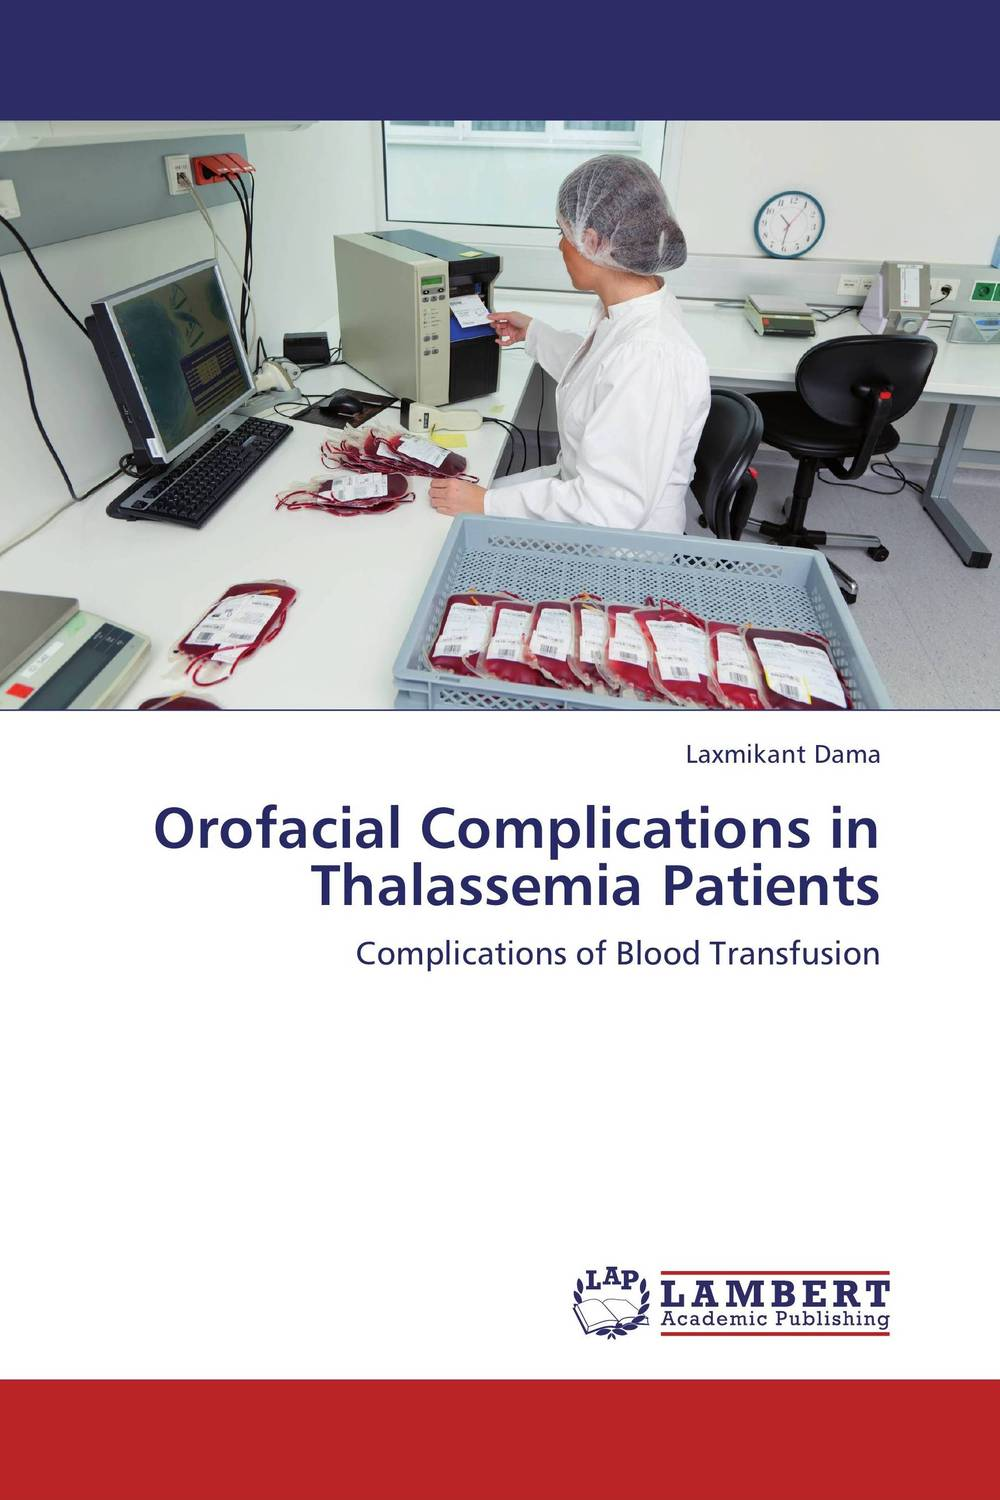 Orofacial Complications in Thalassemia Patients neuralgias of the orofacial region